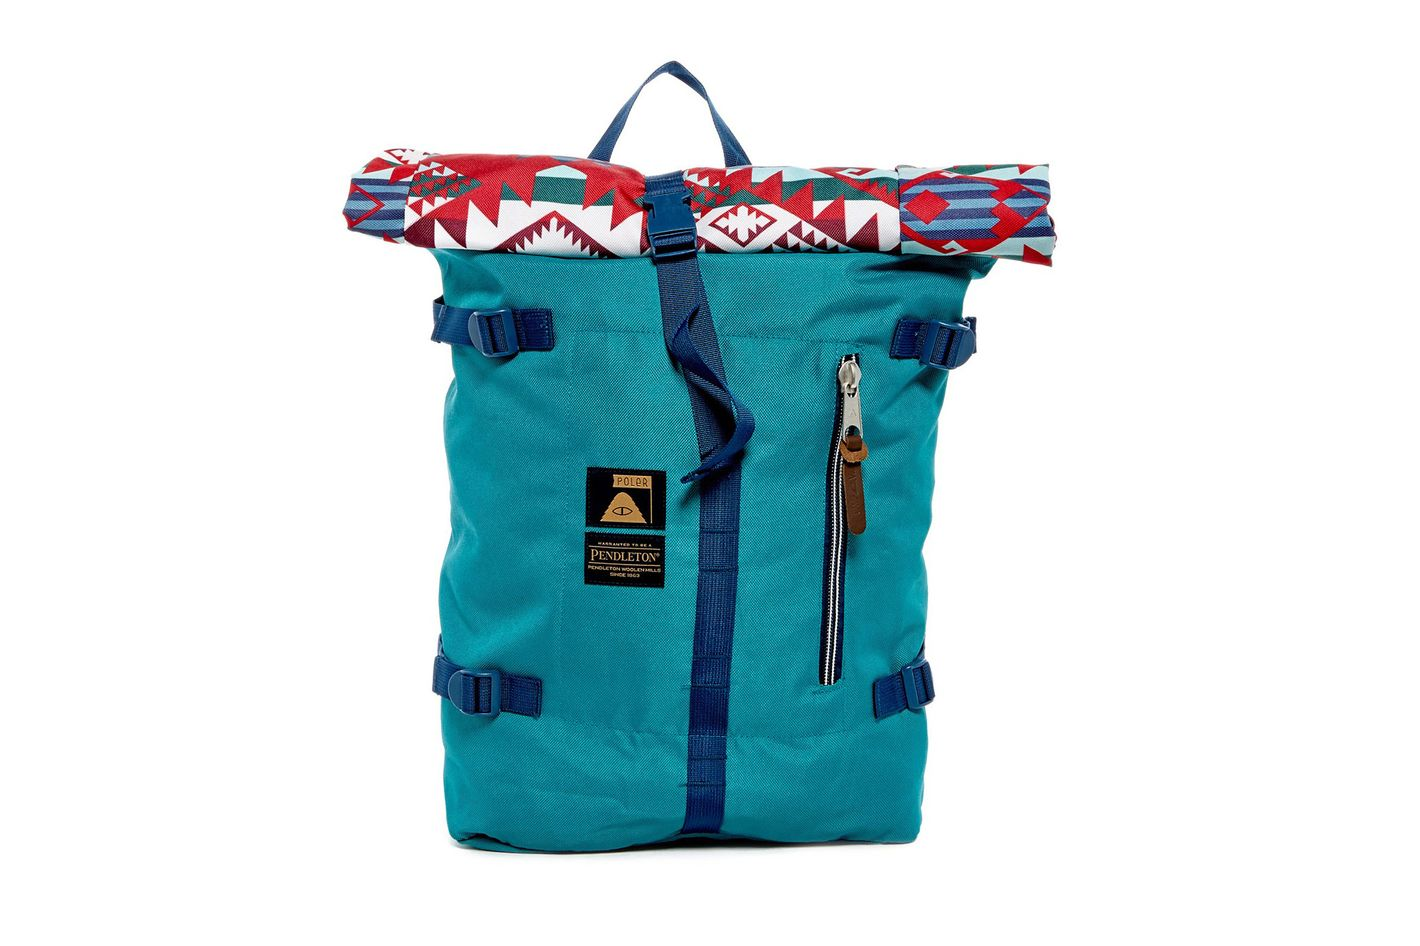 Poler Pendleton Rolltop Backpack